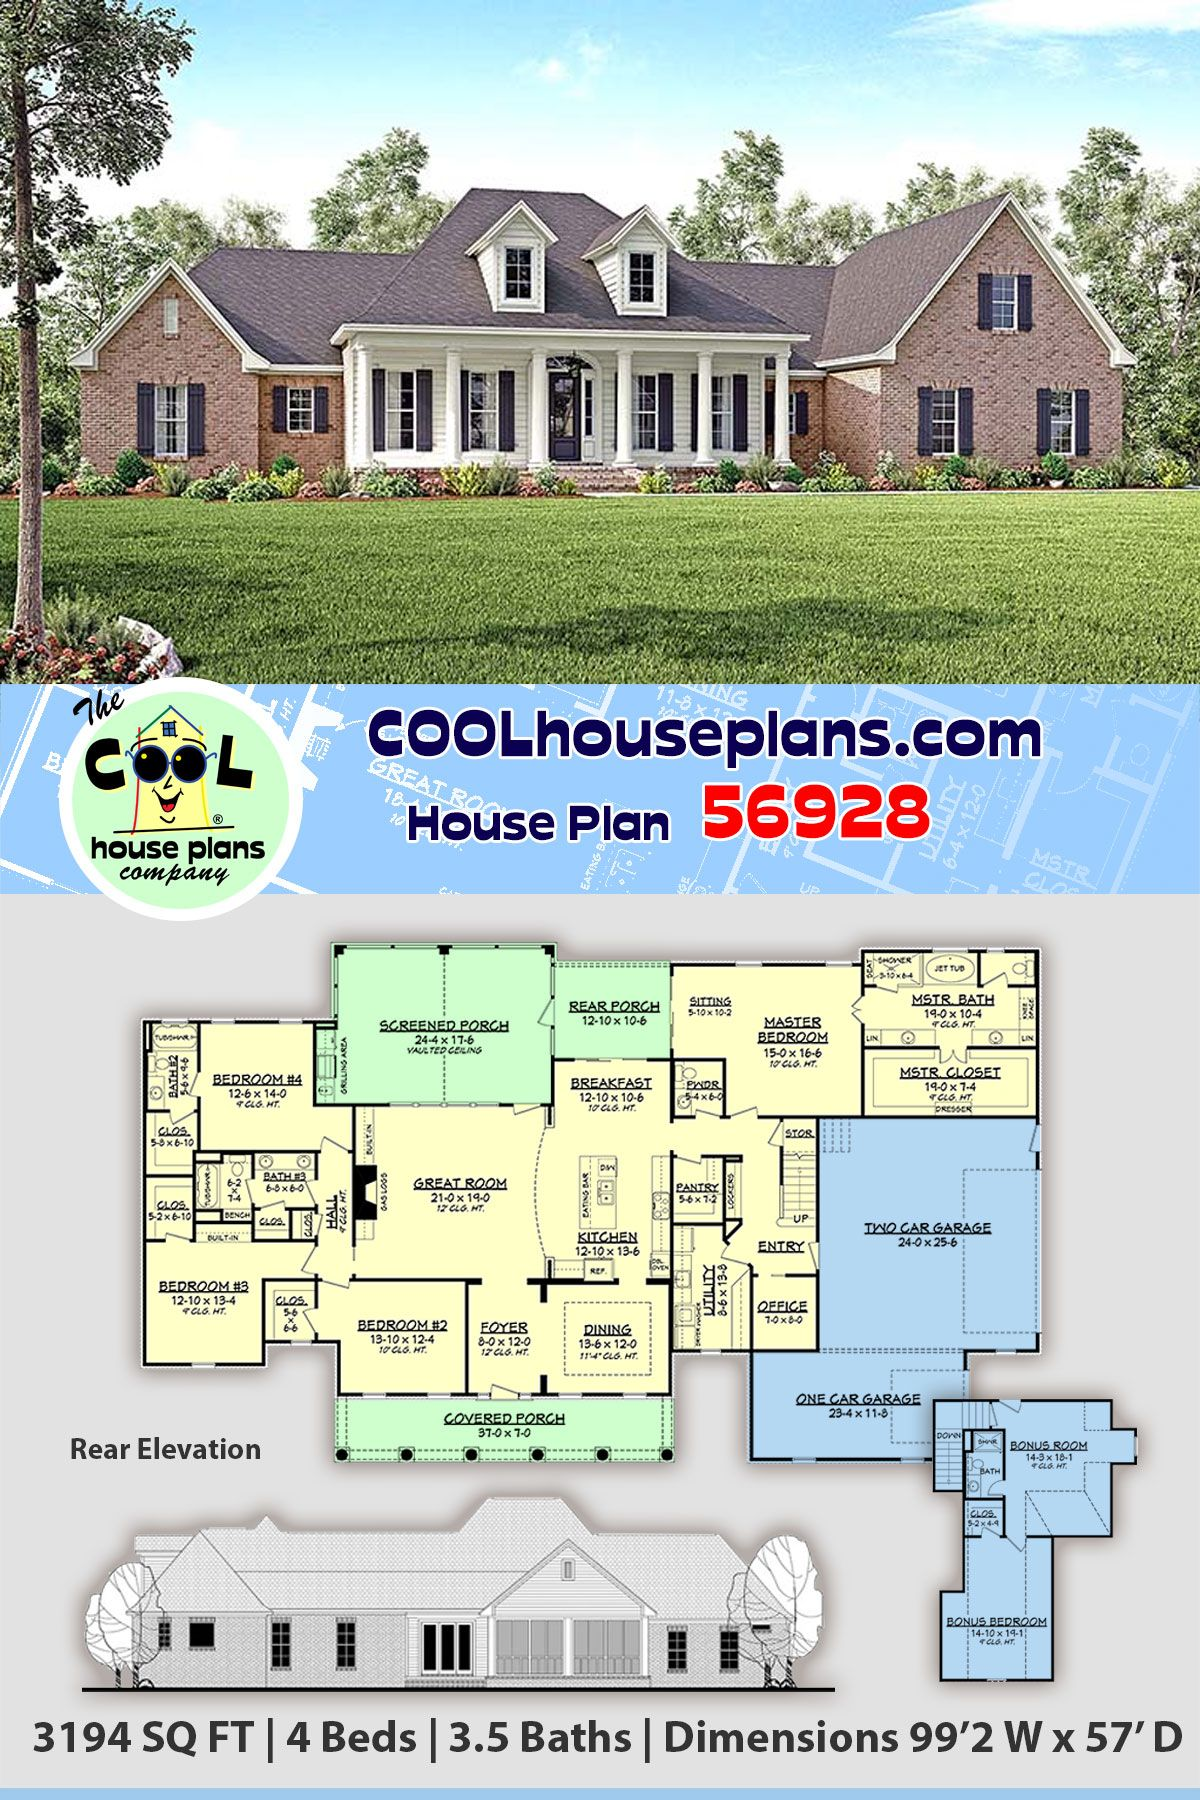 Traditional Style House Plan 56928 With 4 Bed 4 Bath 3 Car Garage In 2020 House Plans Best House Plans Colonial Style Homes